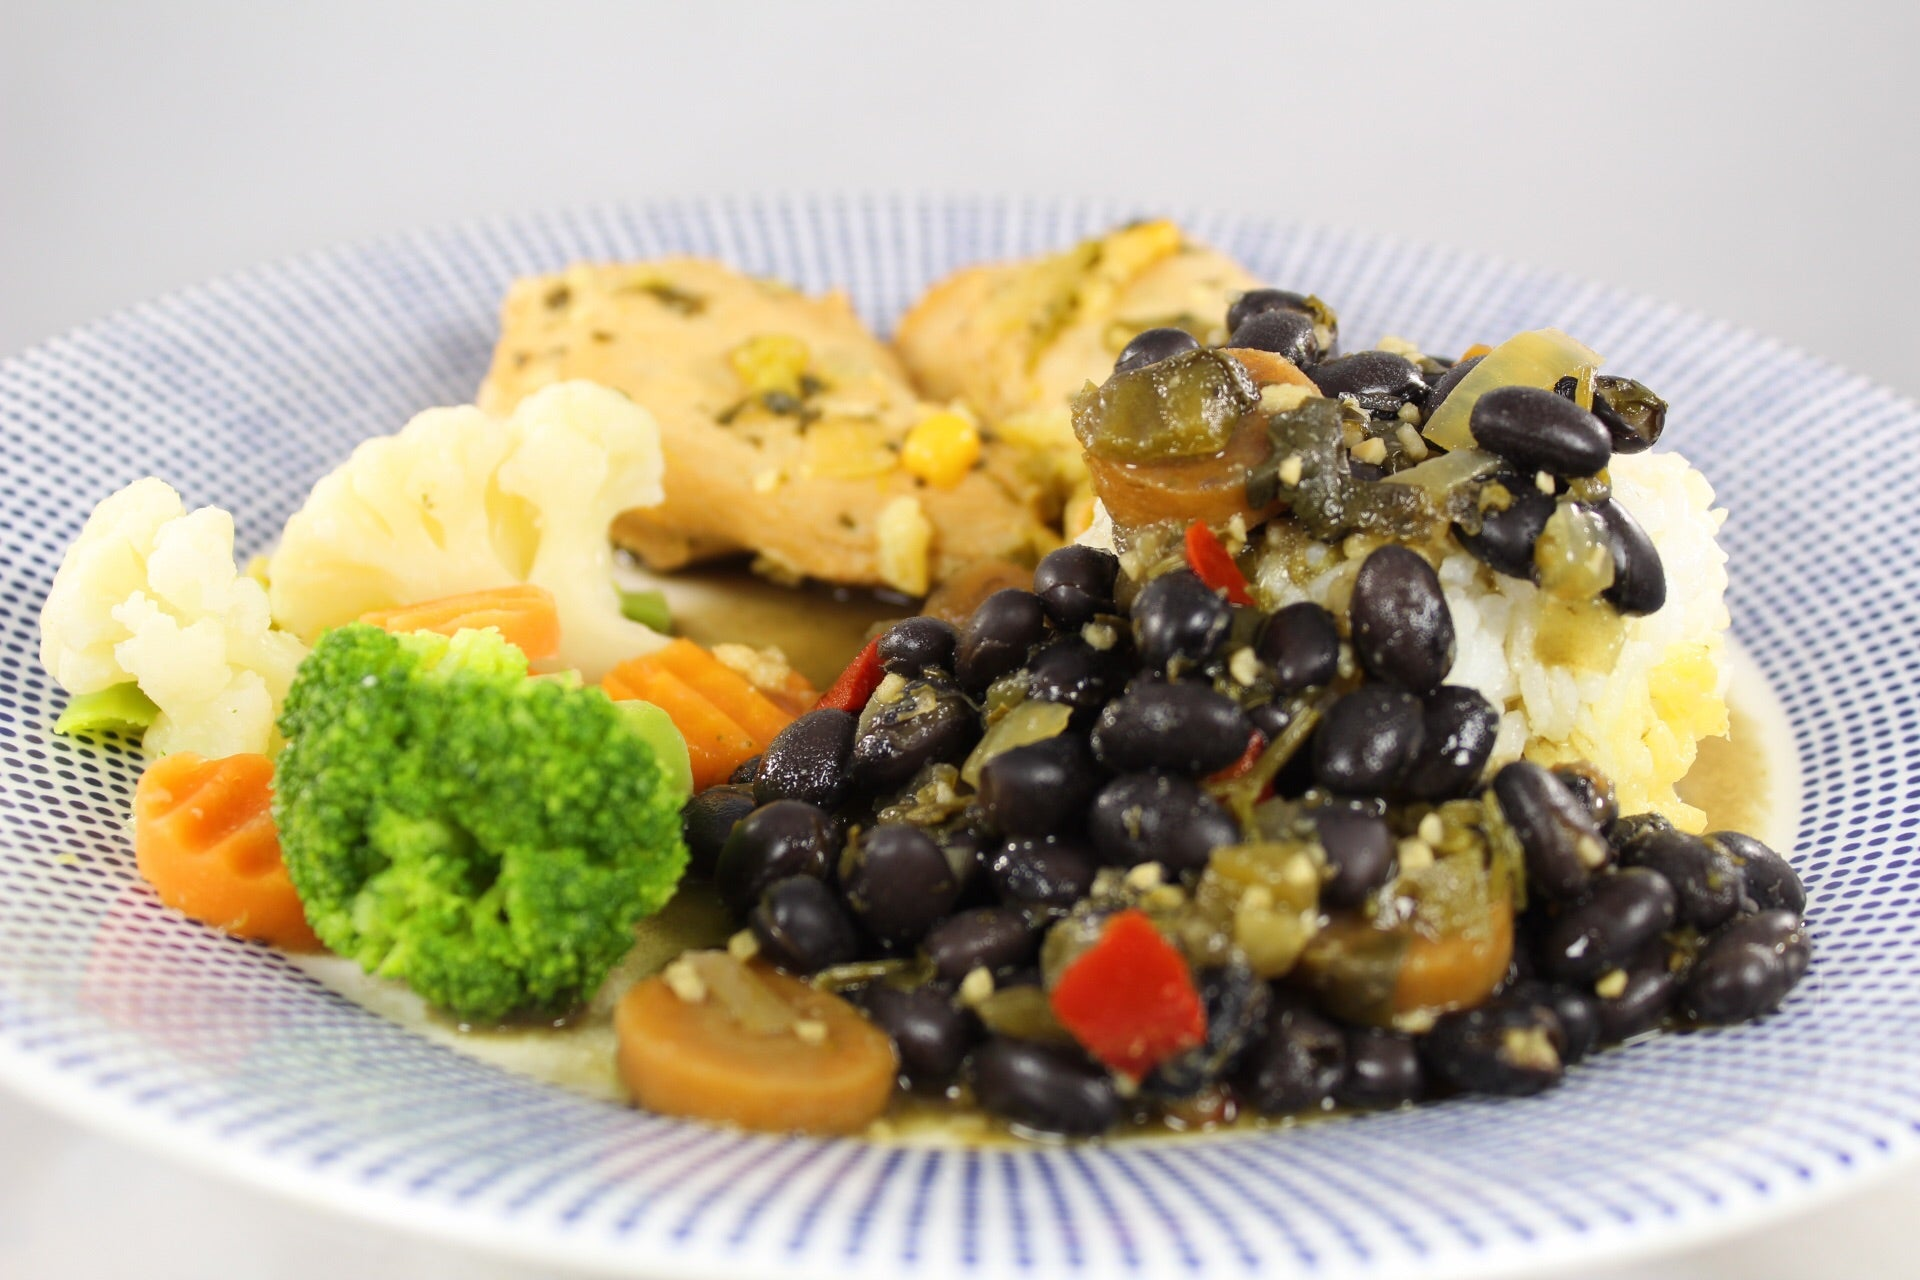 761 - Arroz Jazmín con Habichuelas Negras y Pechuga a la Jardinera / Jazmin Rice with Black Beans and Garden Chicken